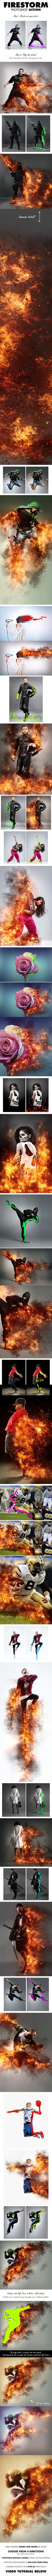 FireStorm Photoshop Action - Photo Effects Actions